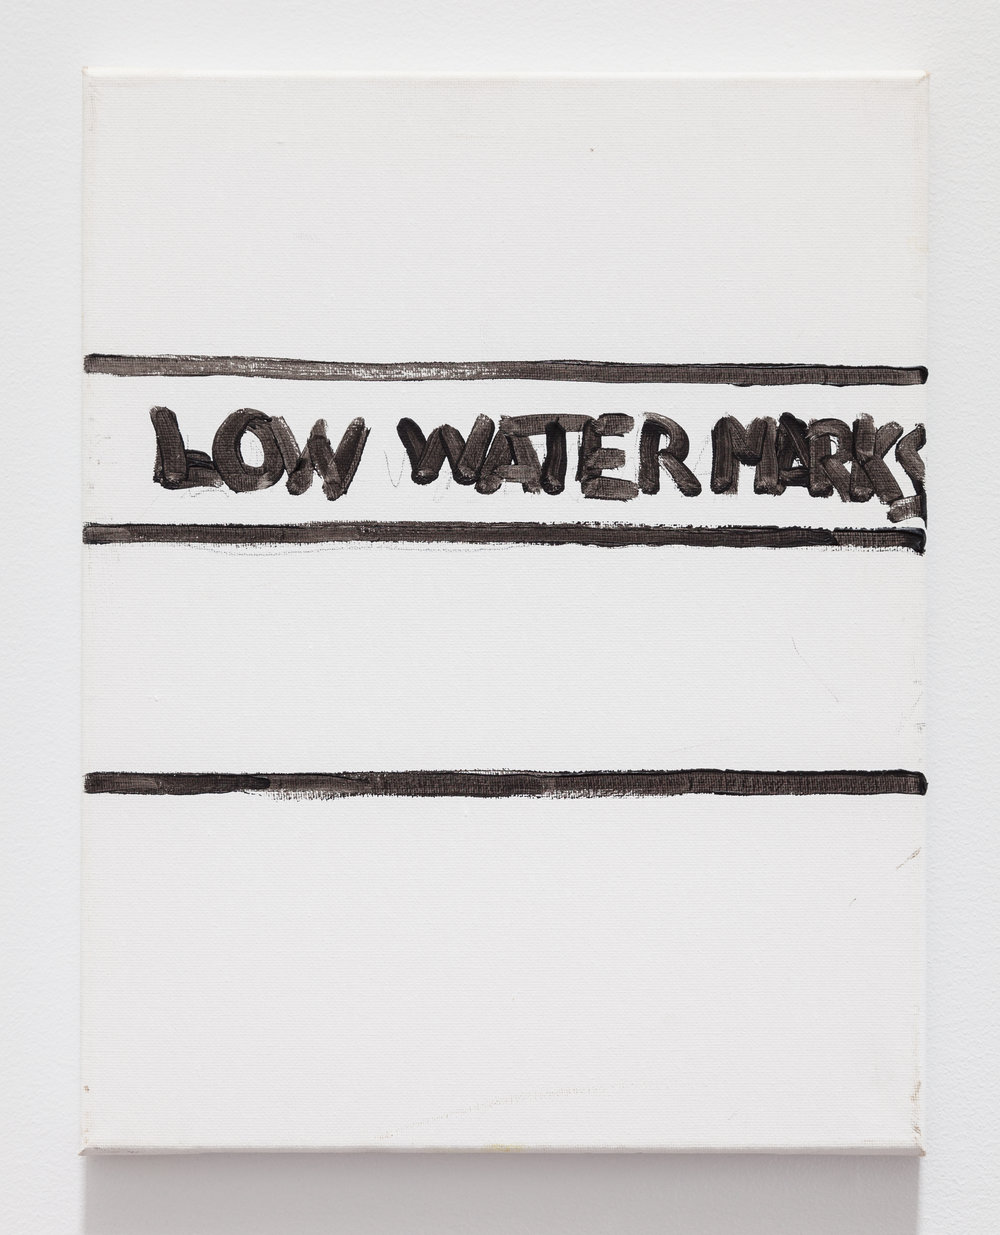 Gene Beery,  Low Water Mark , 2010, acrylic on canvas, 14 x 11 in